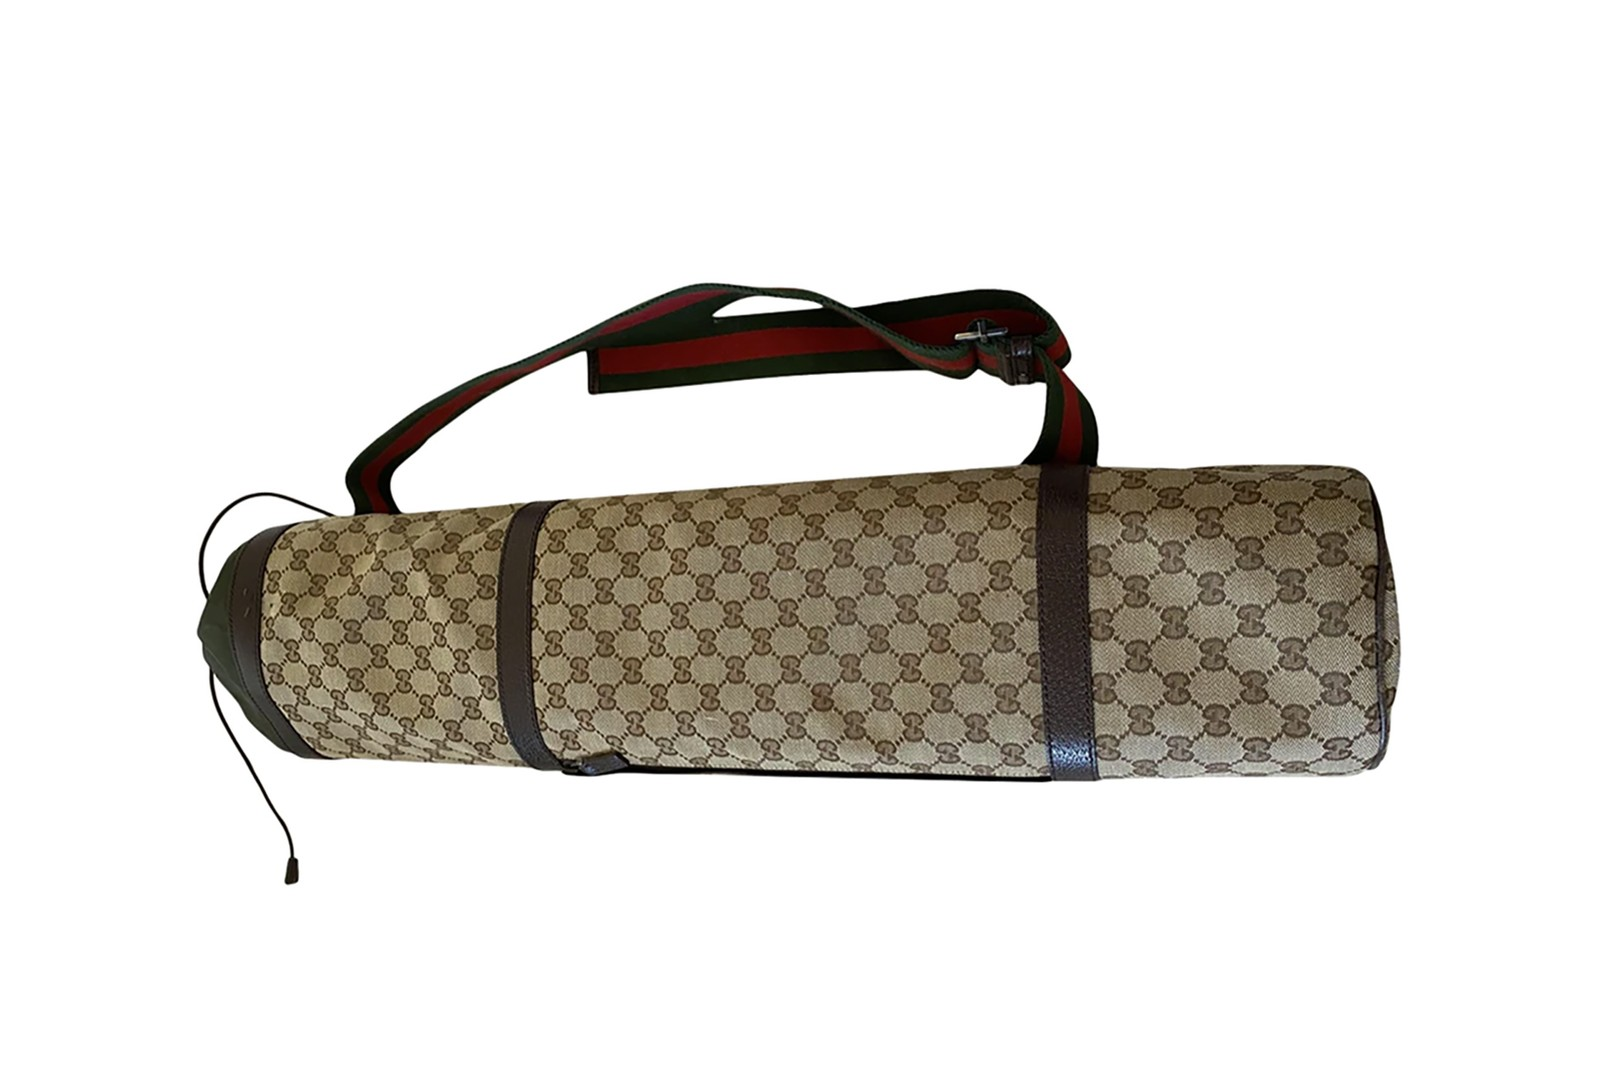 louis vuitton yoga mat  monogram leather strap luggage tag designer brand workout fitness exercise